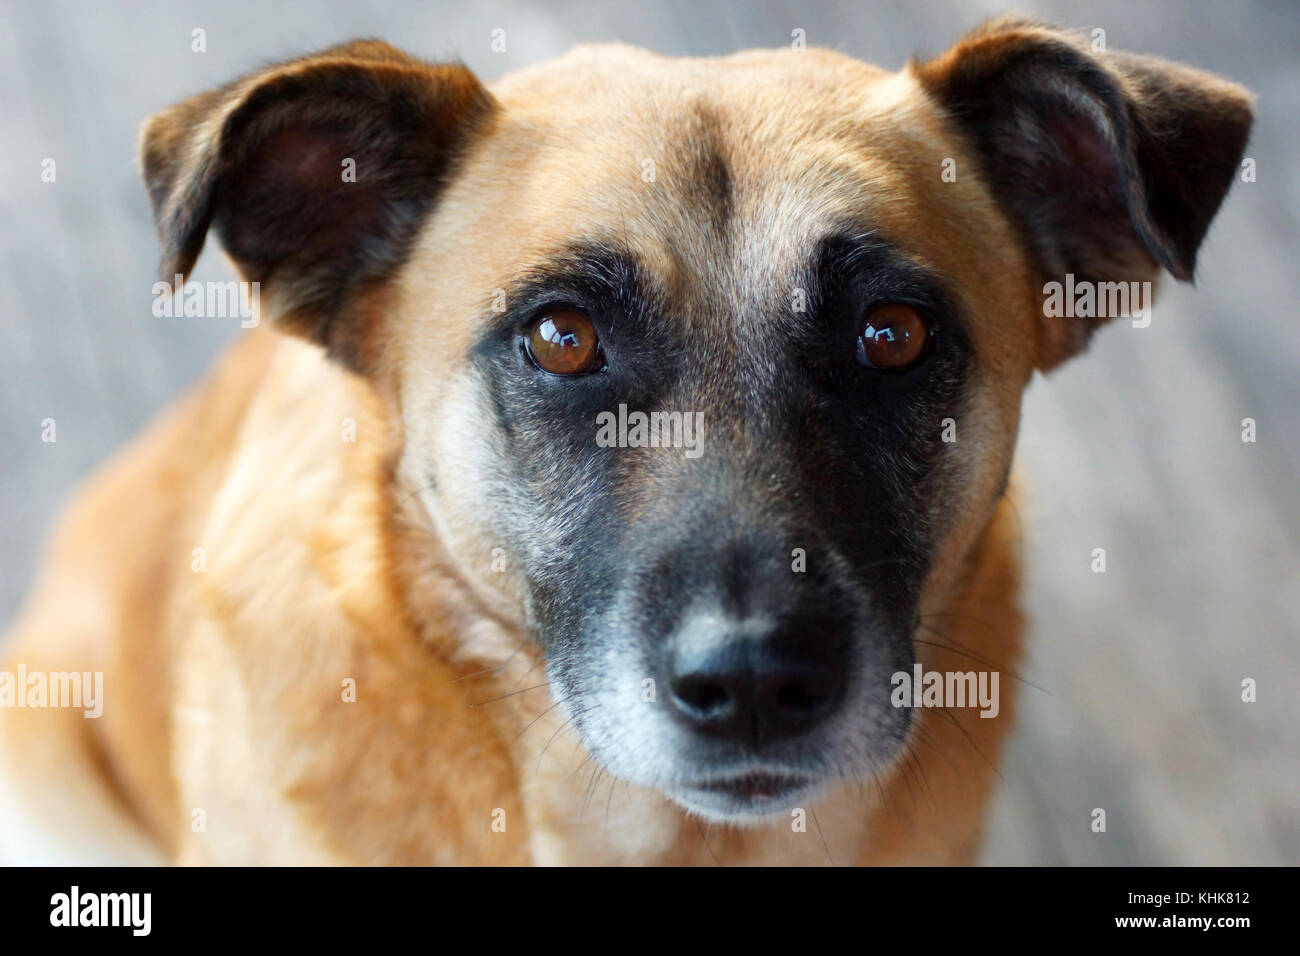 portrait of a yellow dog - Stock Image